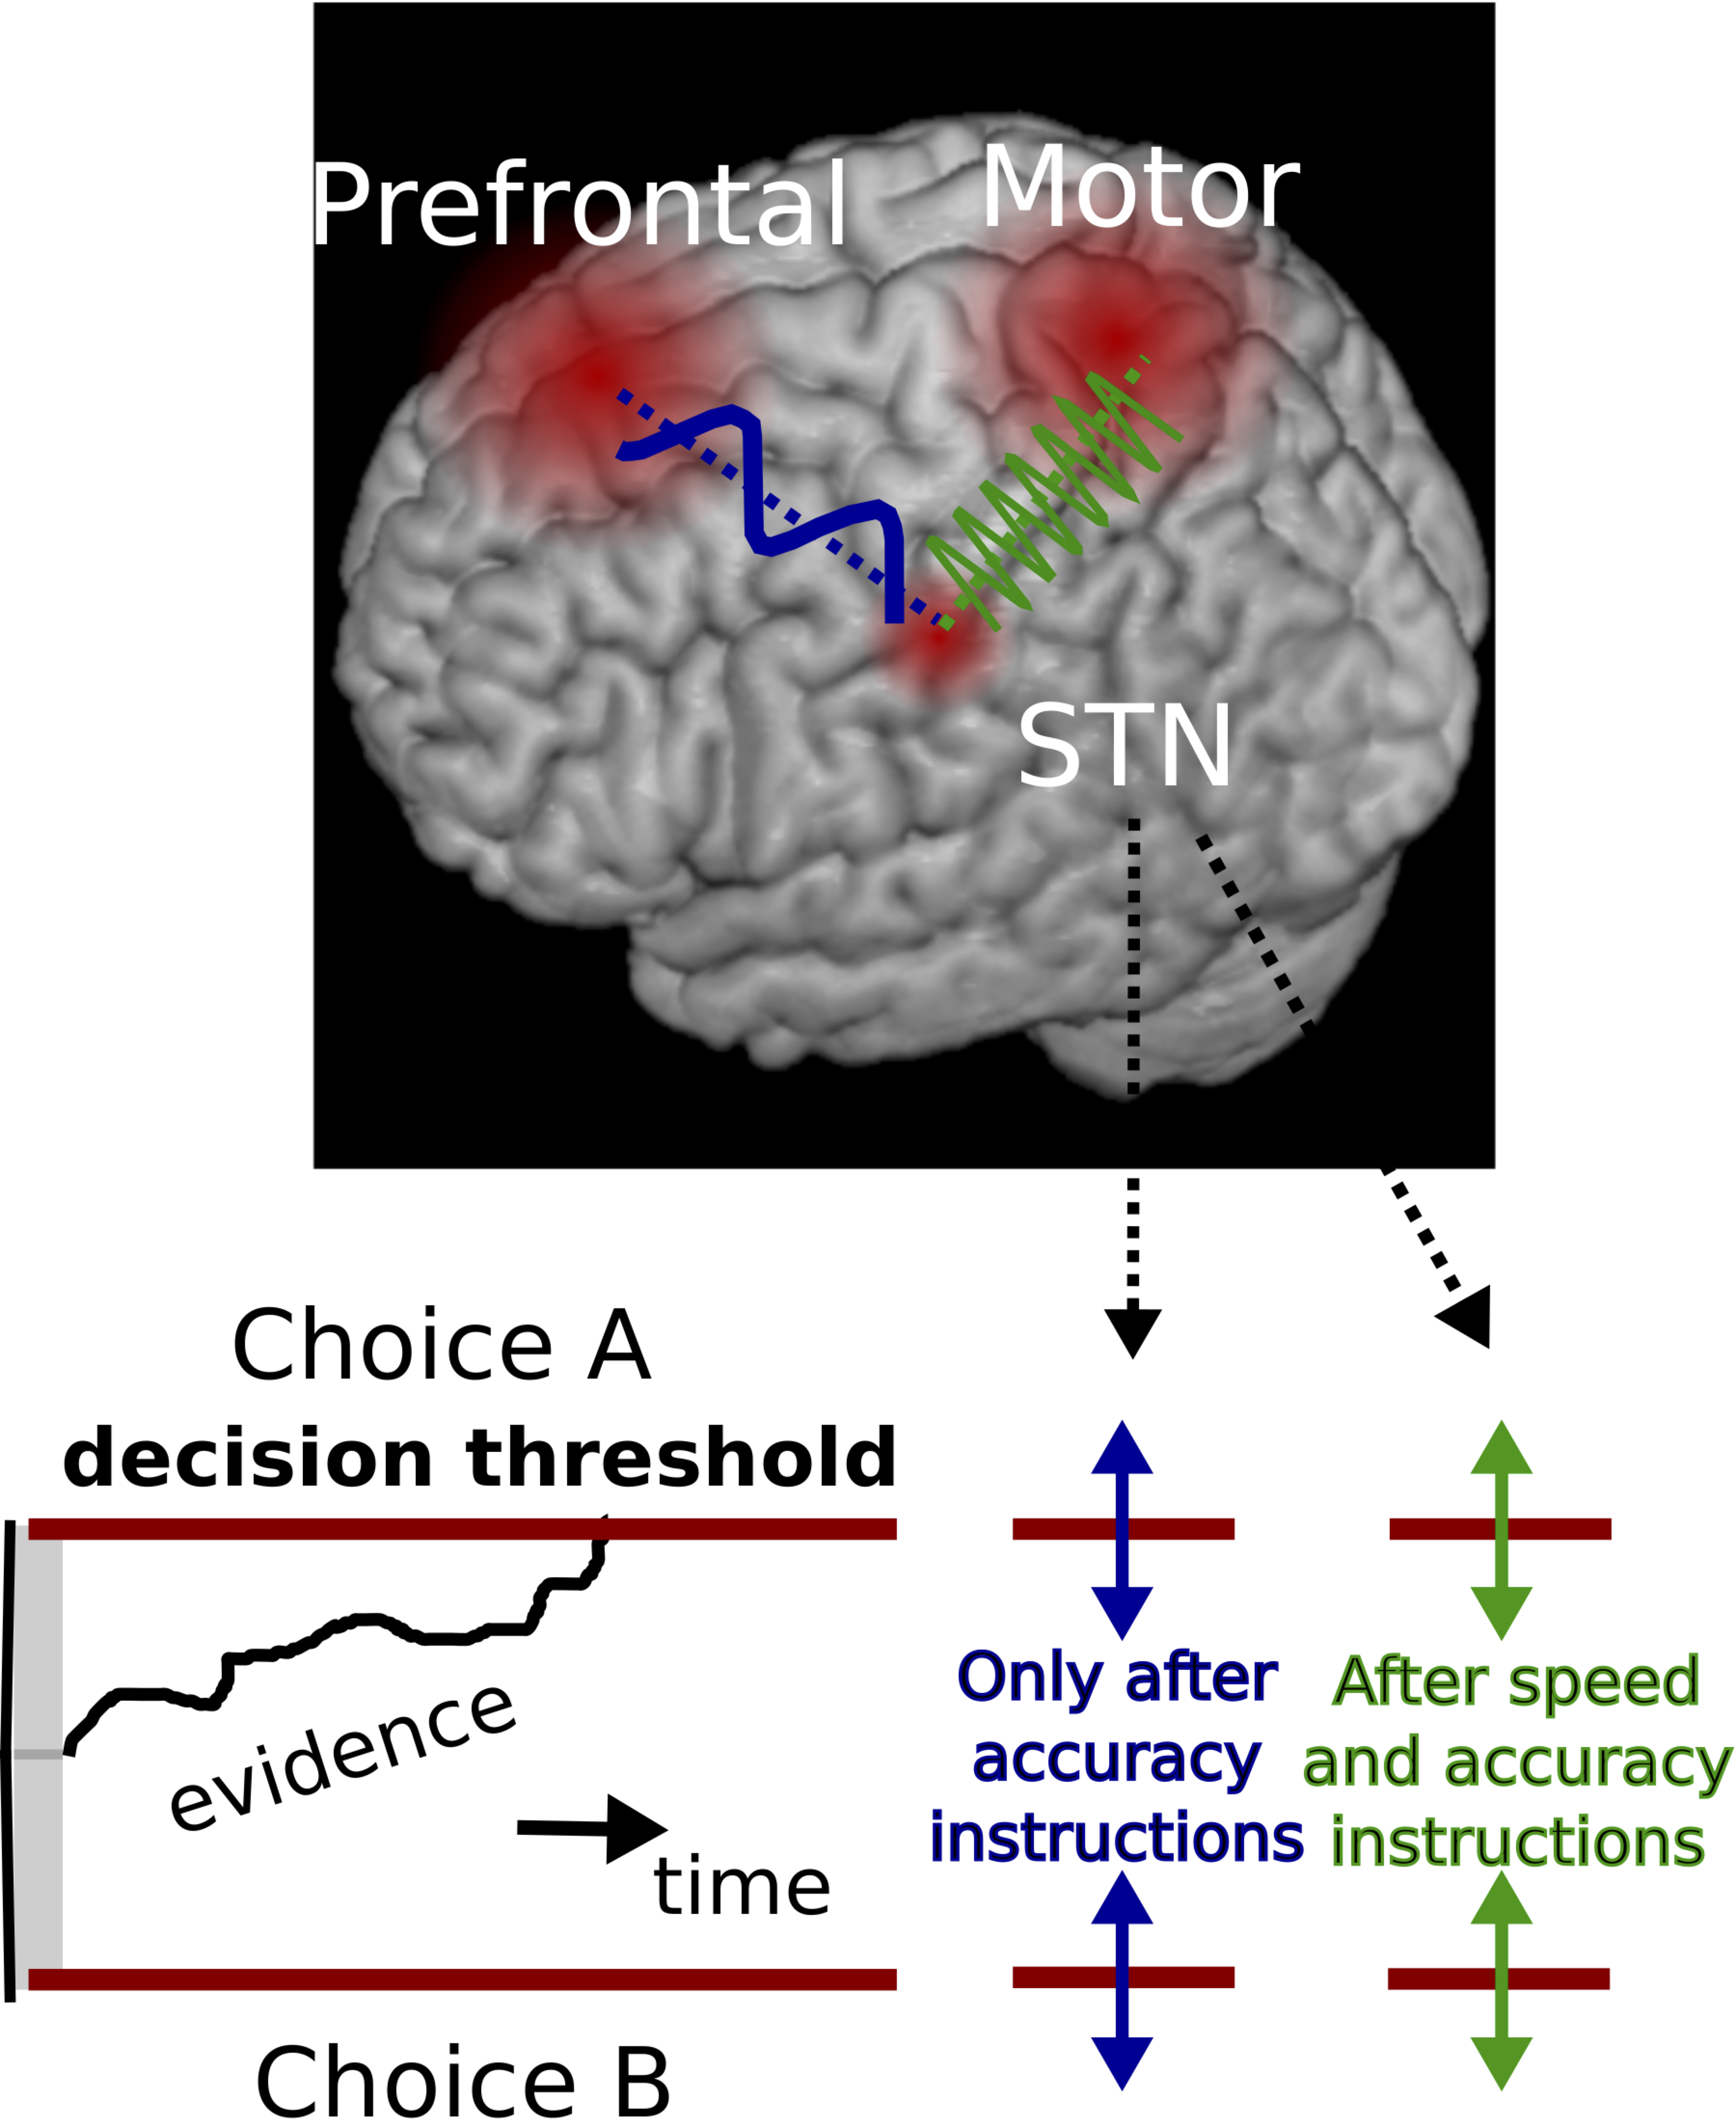 The subthalamic nucleus (STN) switches its interactions with two different cortical circuits (prefrontal cortex in blue, and motor cortex in green) to affect decision-making plans.